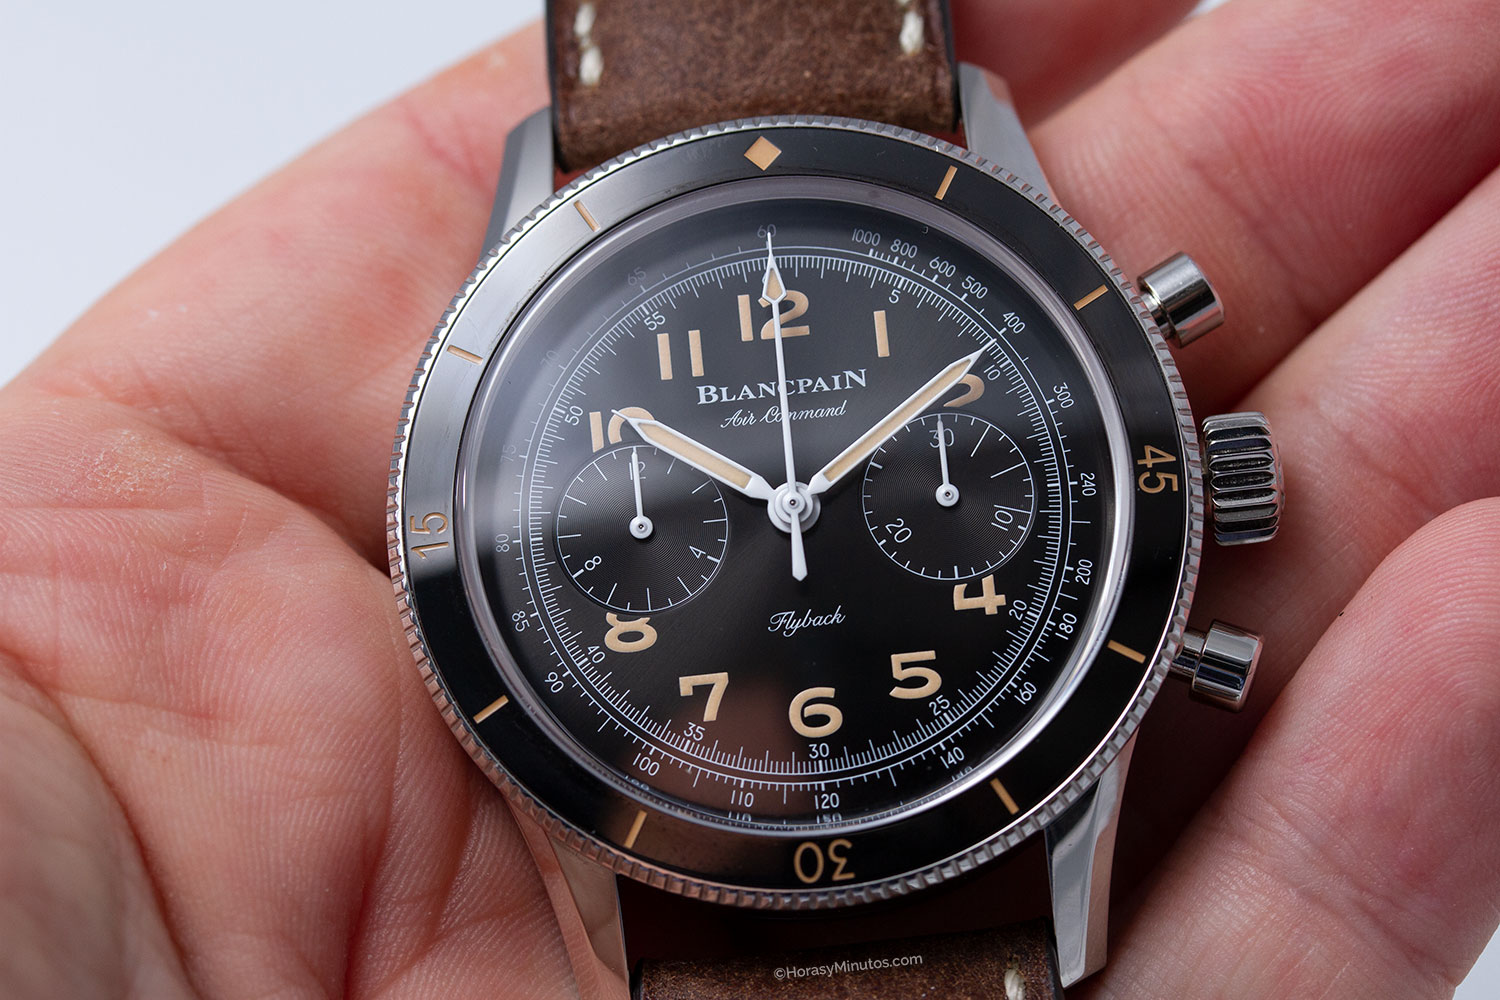 Esfera del Blancpain Air Command